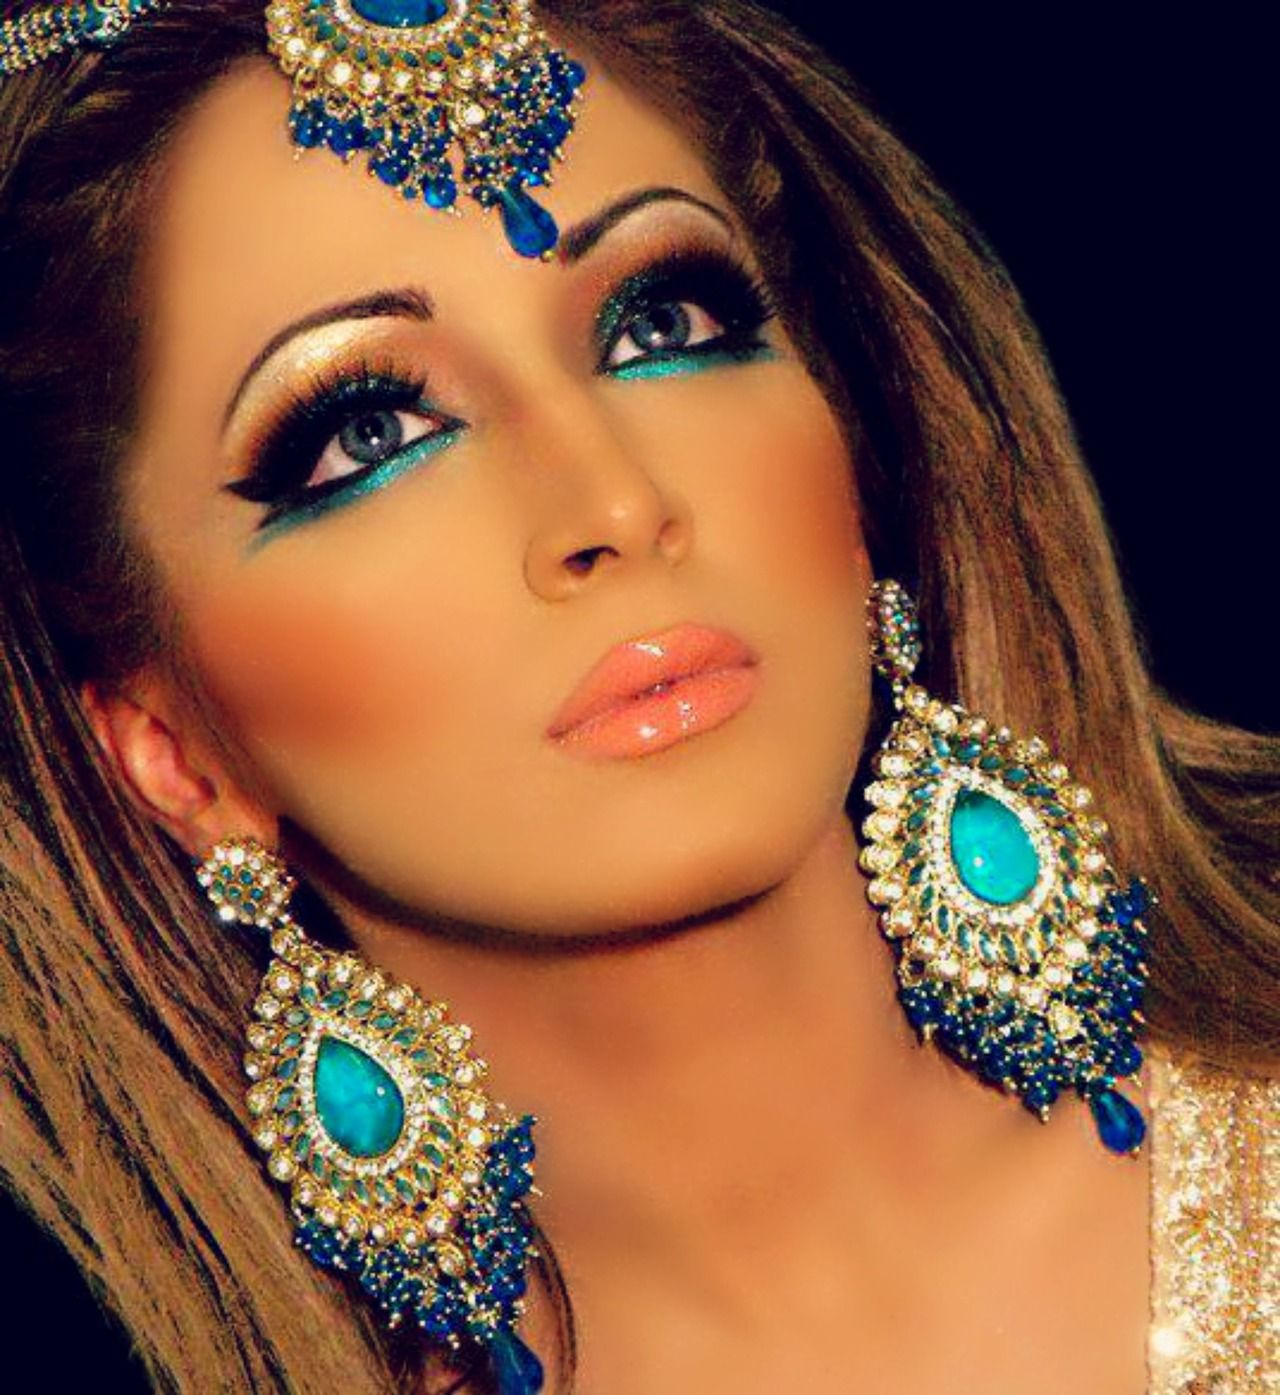 Worst makeup mistakes on your wedding indian bridal diaries - Best South Asian Bridal Makeup